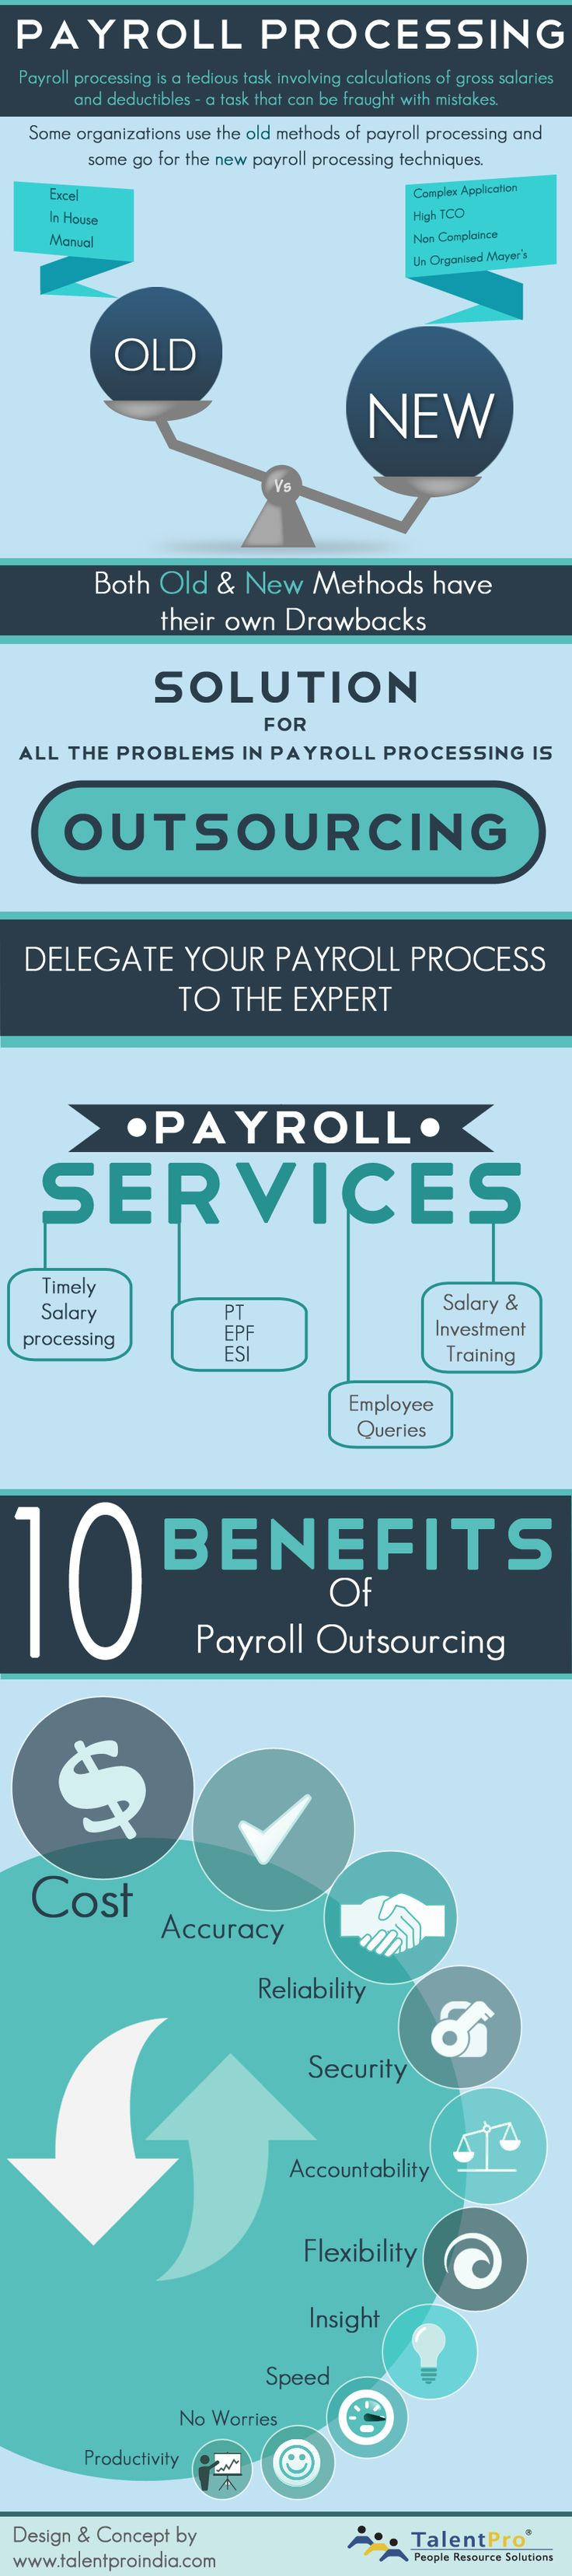 Payroll Processing Technologies Infographic How are you